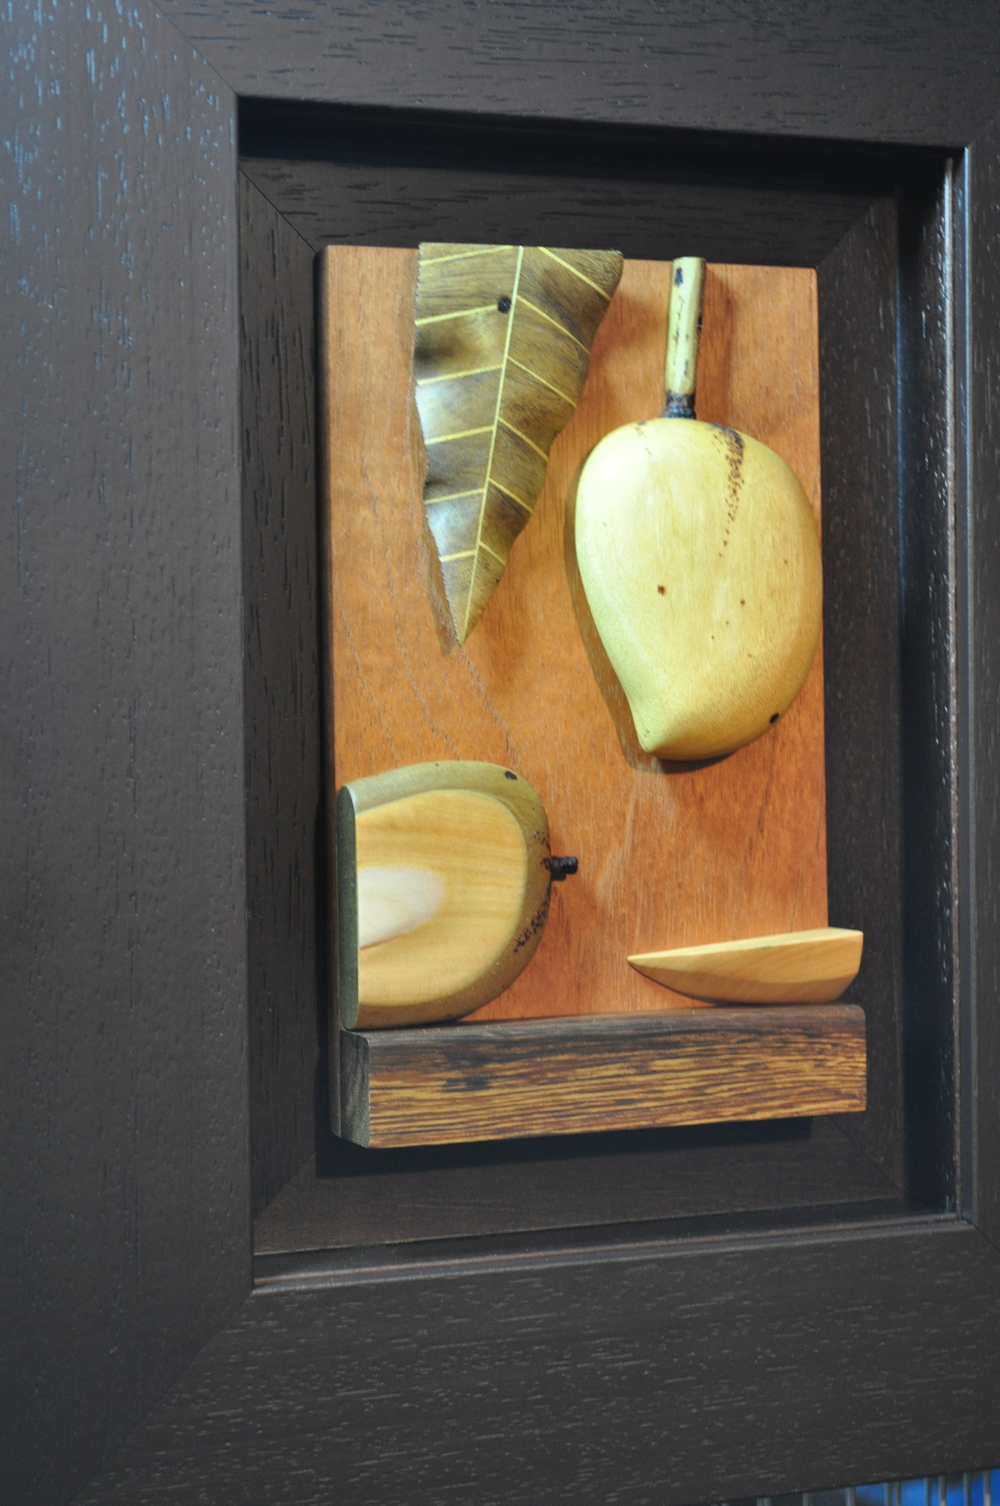 Theintarsiatechnique consists of using wood in its natural color. Photo: Pamy Rojas